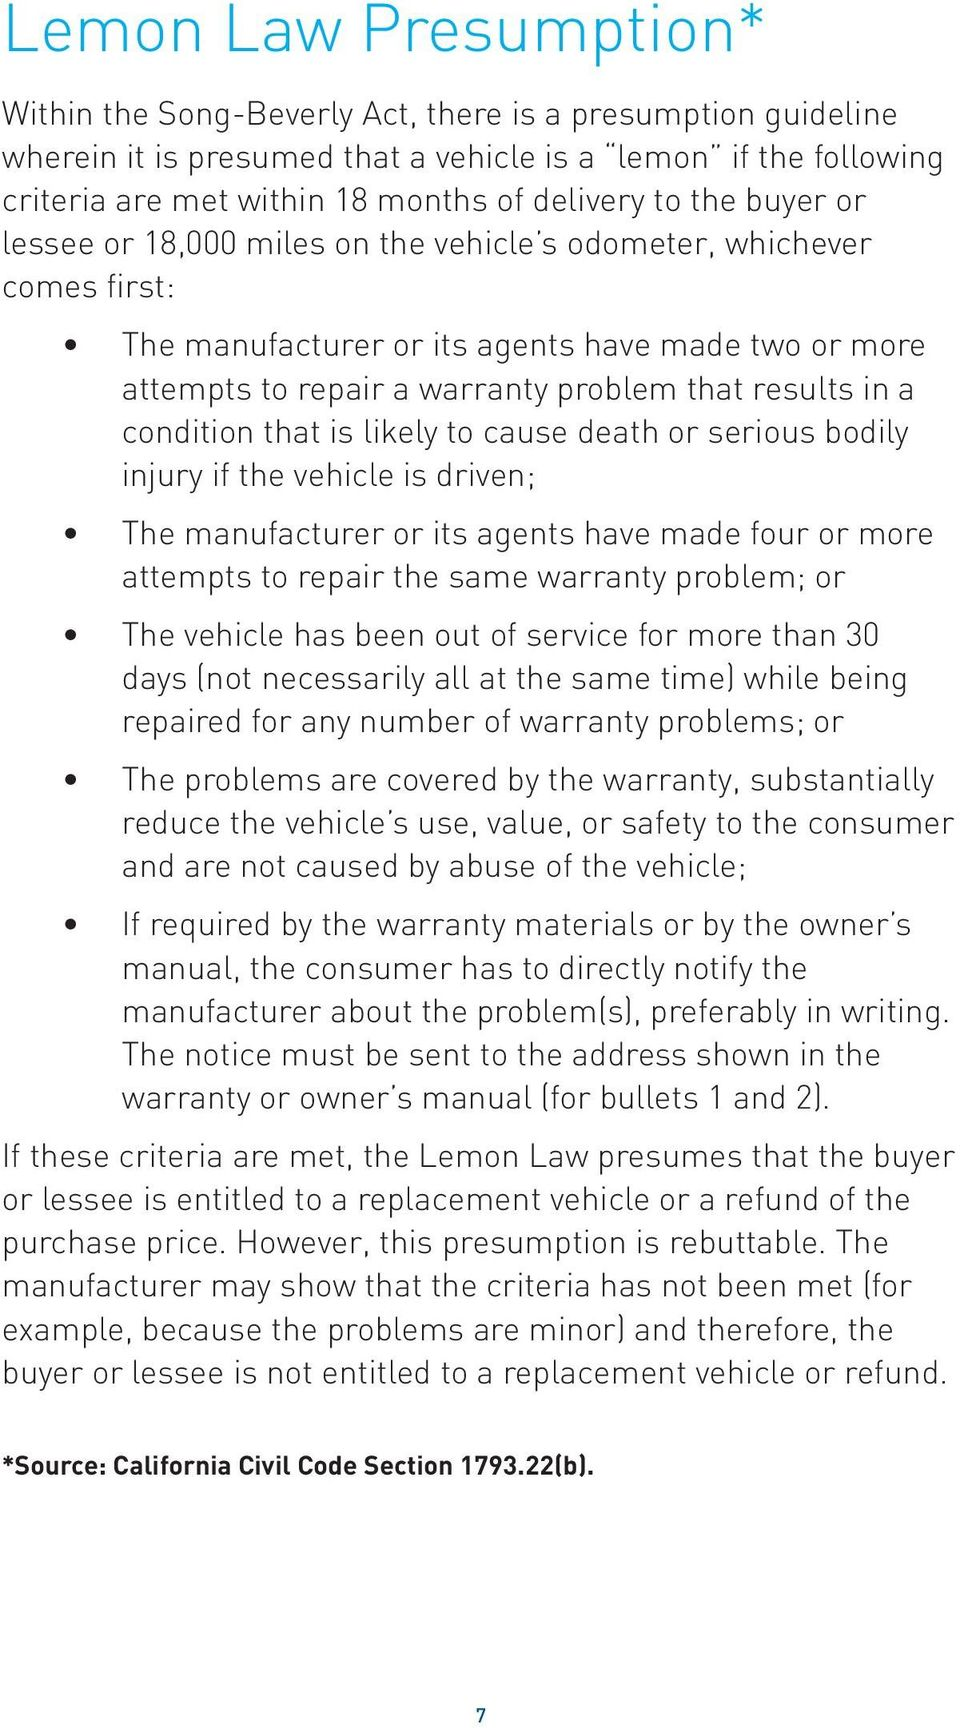 condition that is likely to cause death or serious bodily injury if the vehicle is driven; The manufacturer or its agents have made four or more attempts to repair the same warranty problem; or The